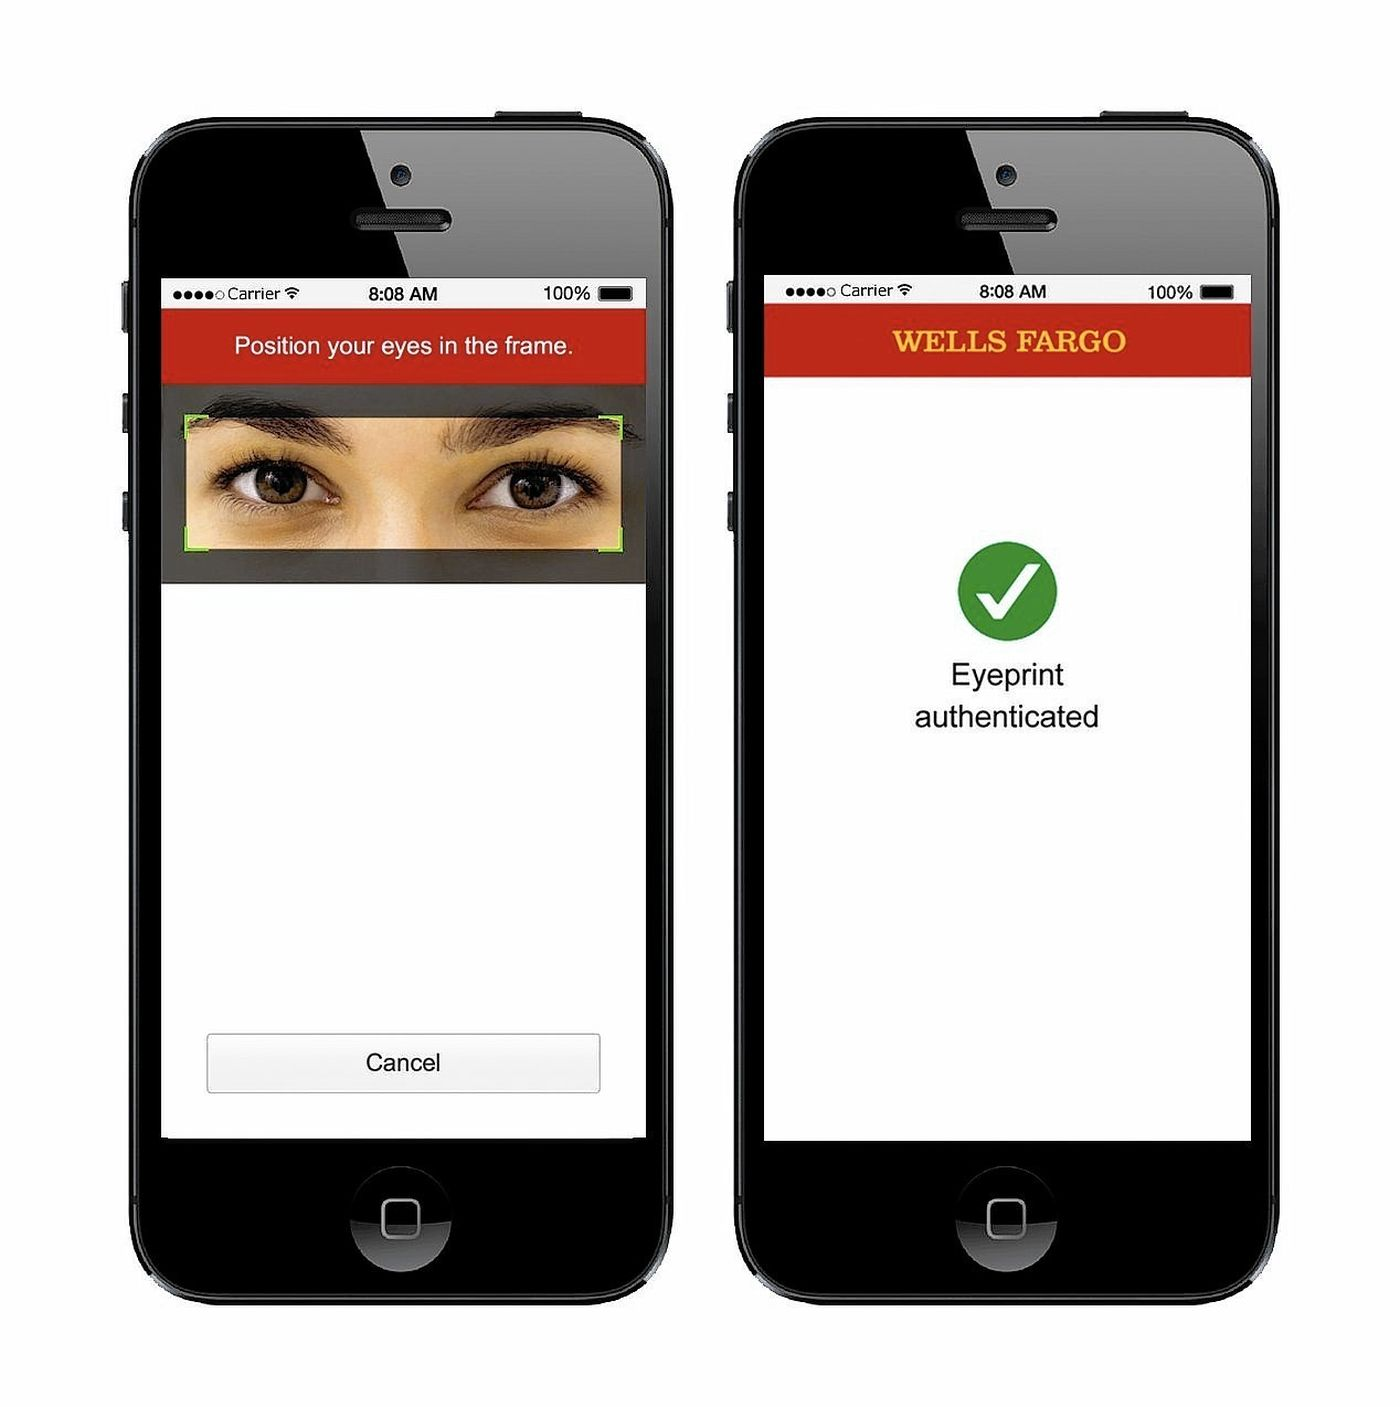 Wells Fargo Eye Scanning